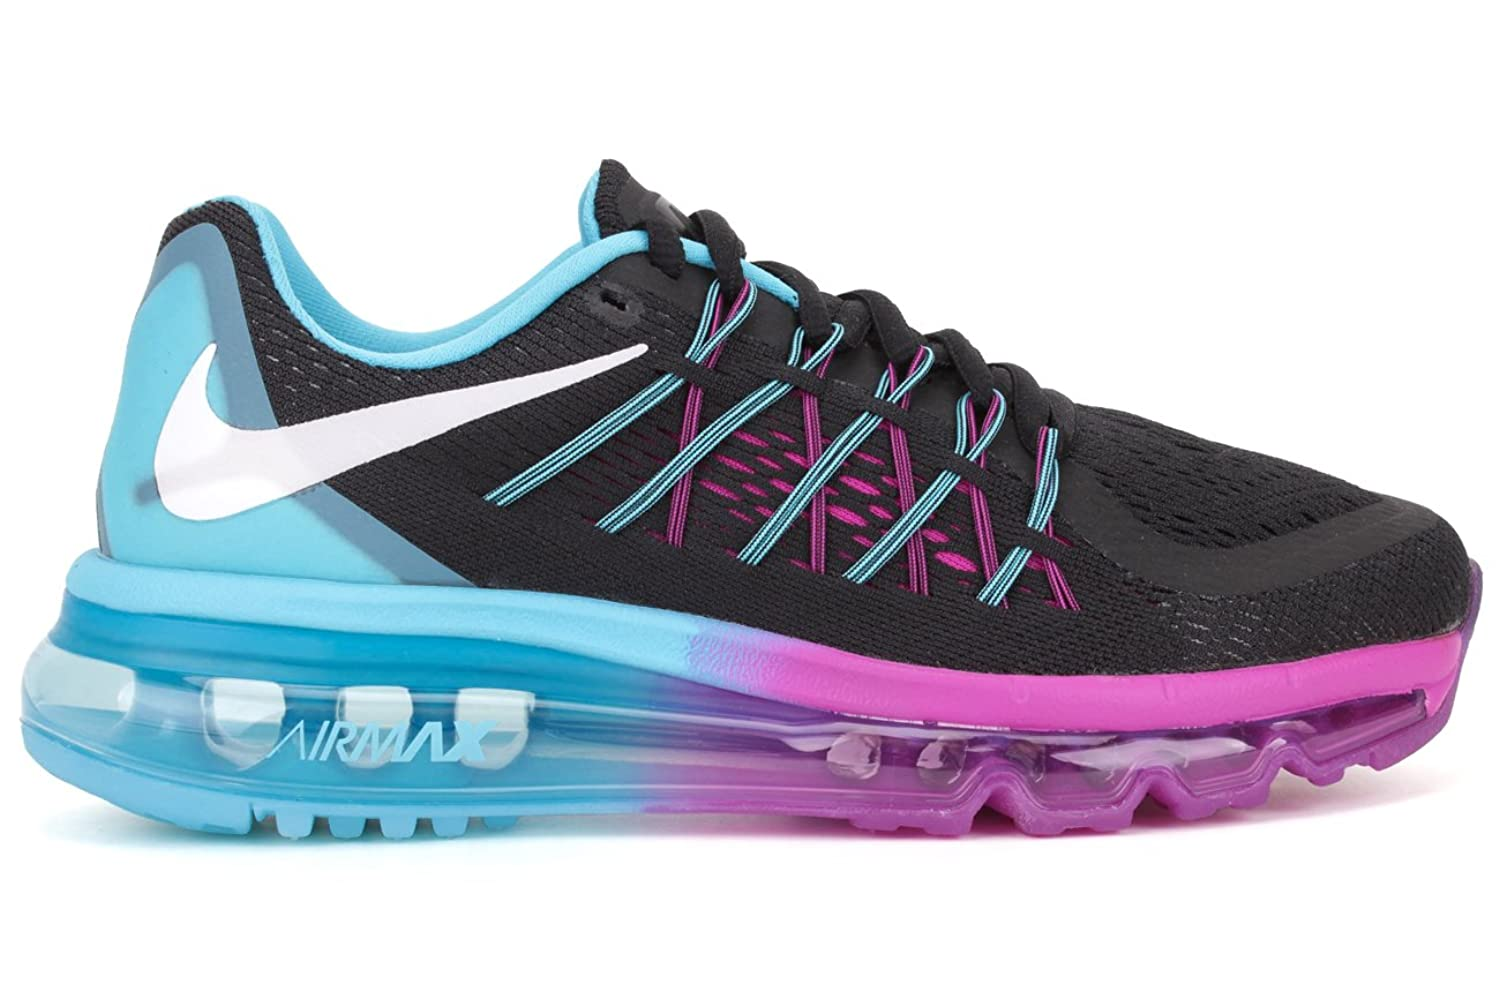 NIKE AIR MAX 2015 BLACK WHITE discount price